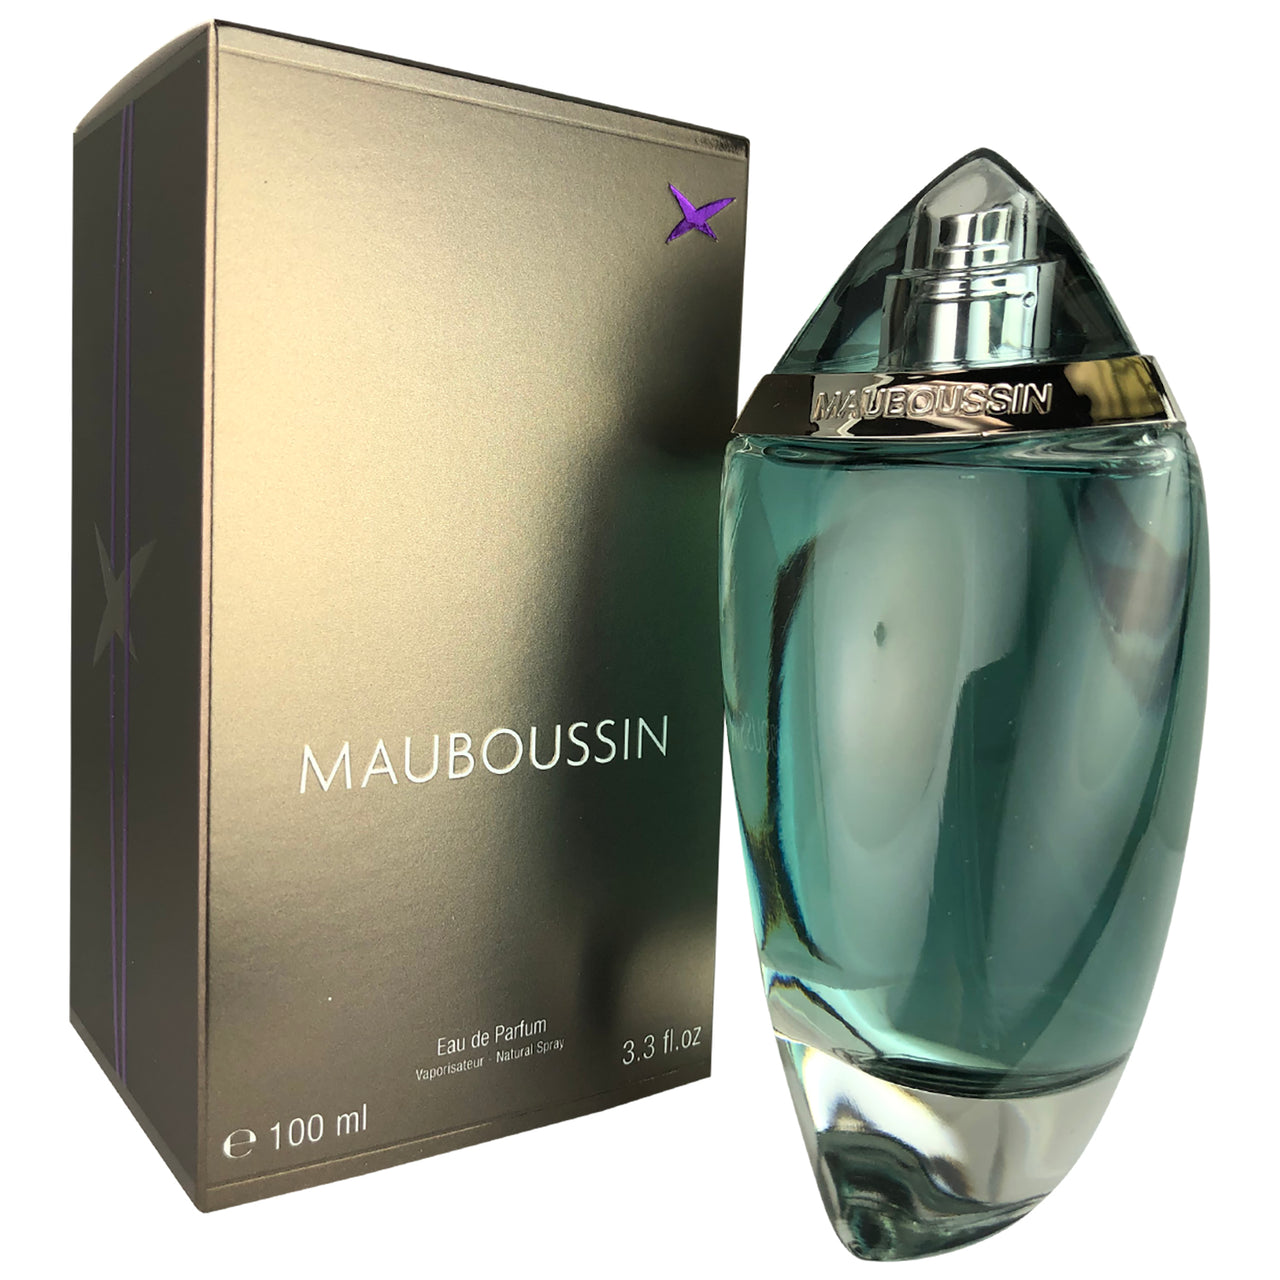 Mauboussin for Men by Mauboussin 3.3 oz Eau de Parfum Natural Spray